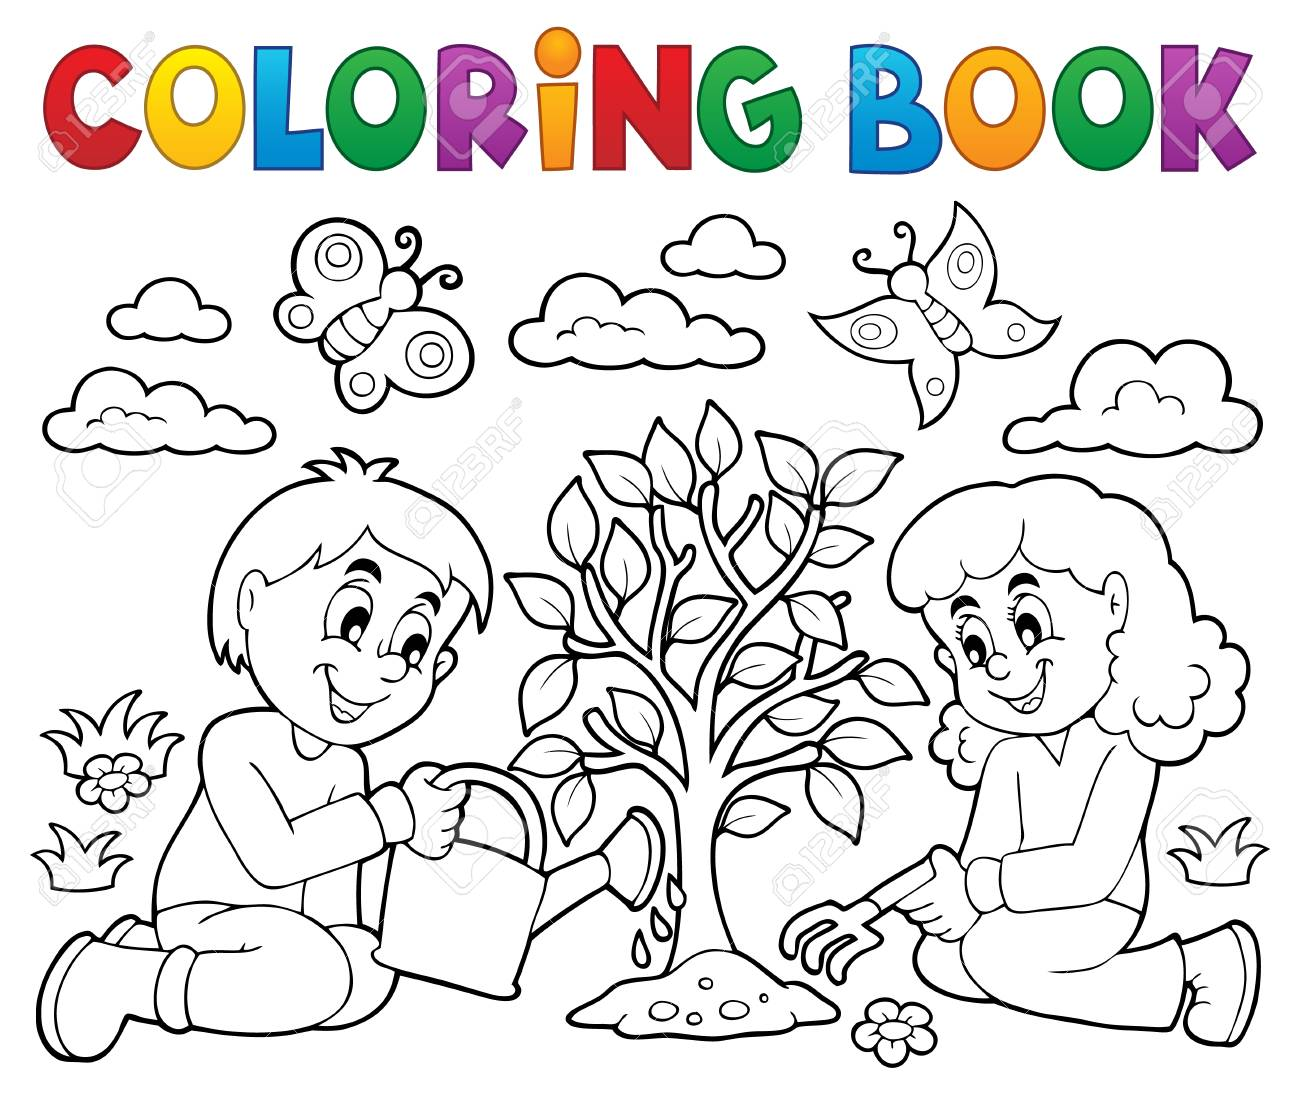 - Coloring Book Kids Planting Tree Vector Illustration. Royalty Free